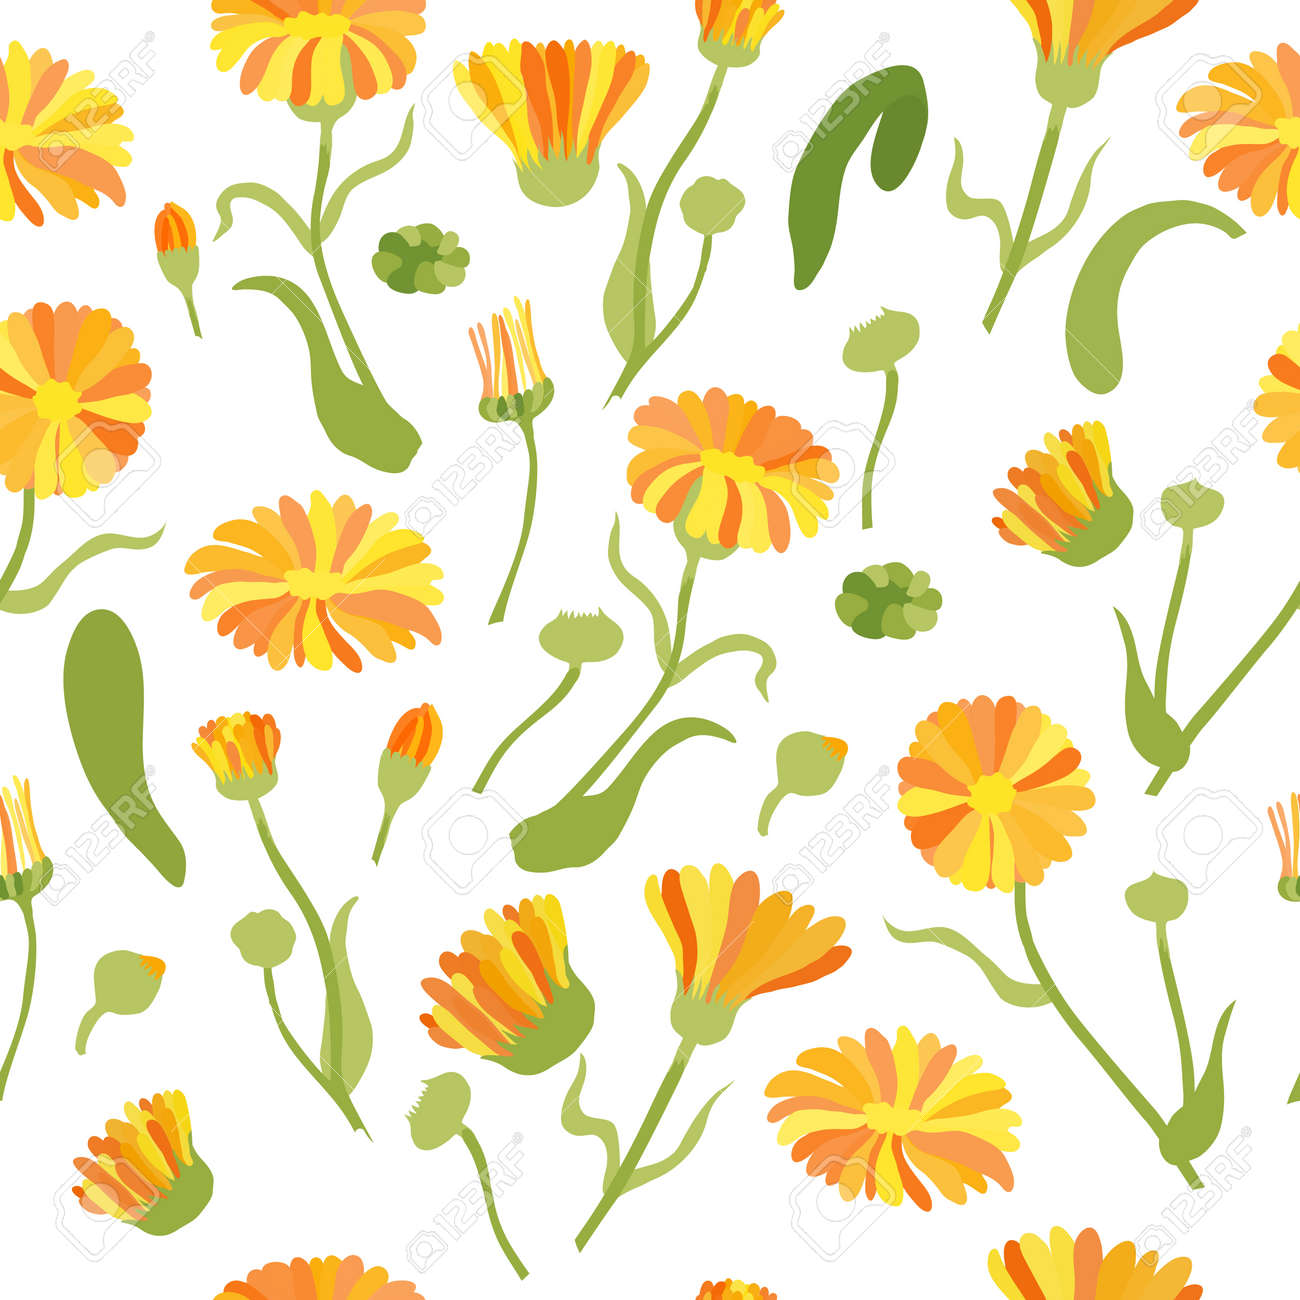 Seamless Pattern with Colored Calendula Parts. Twigs, Flower Heads and Leaves Placed Chaotically on White Backdrop. Ideal for Magazine, Recipe book, Poster, Card, Menu cover etc. - 166149135